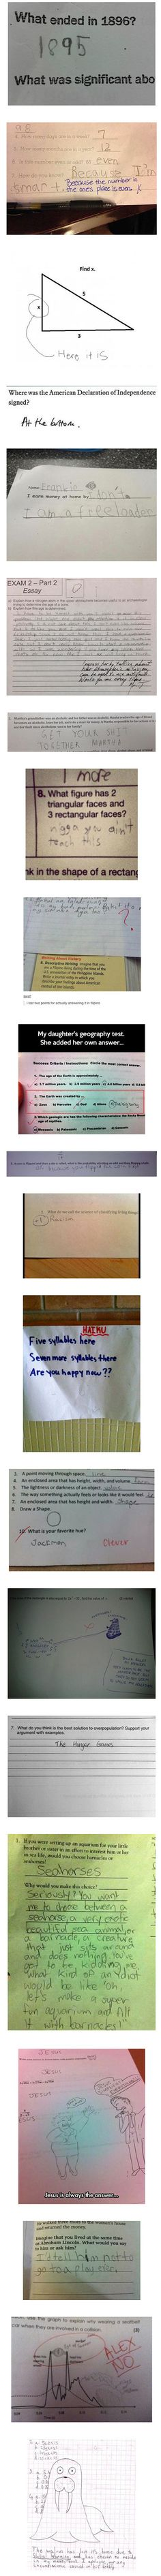 Don't know the answer on a test? Here are some examples of what you shouldn't write on them.